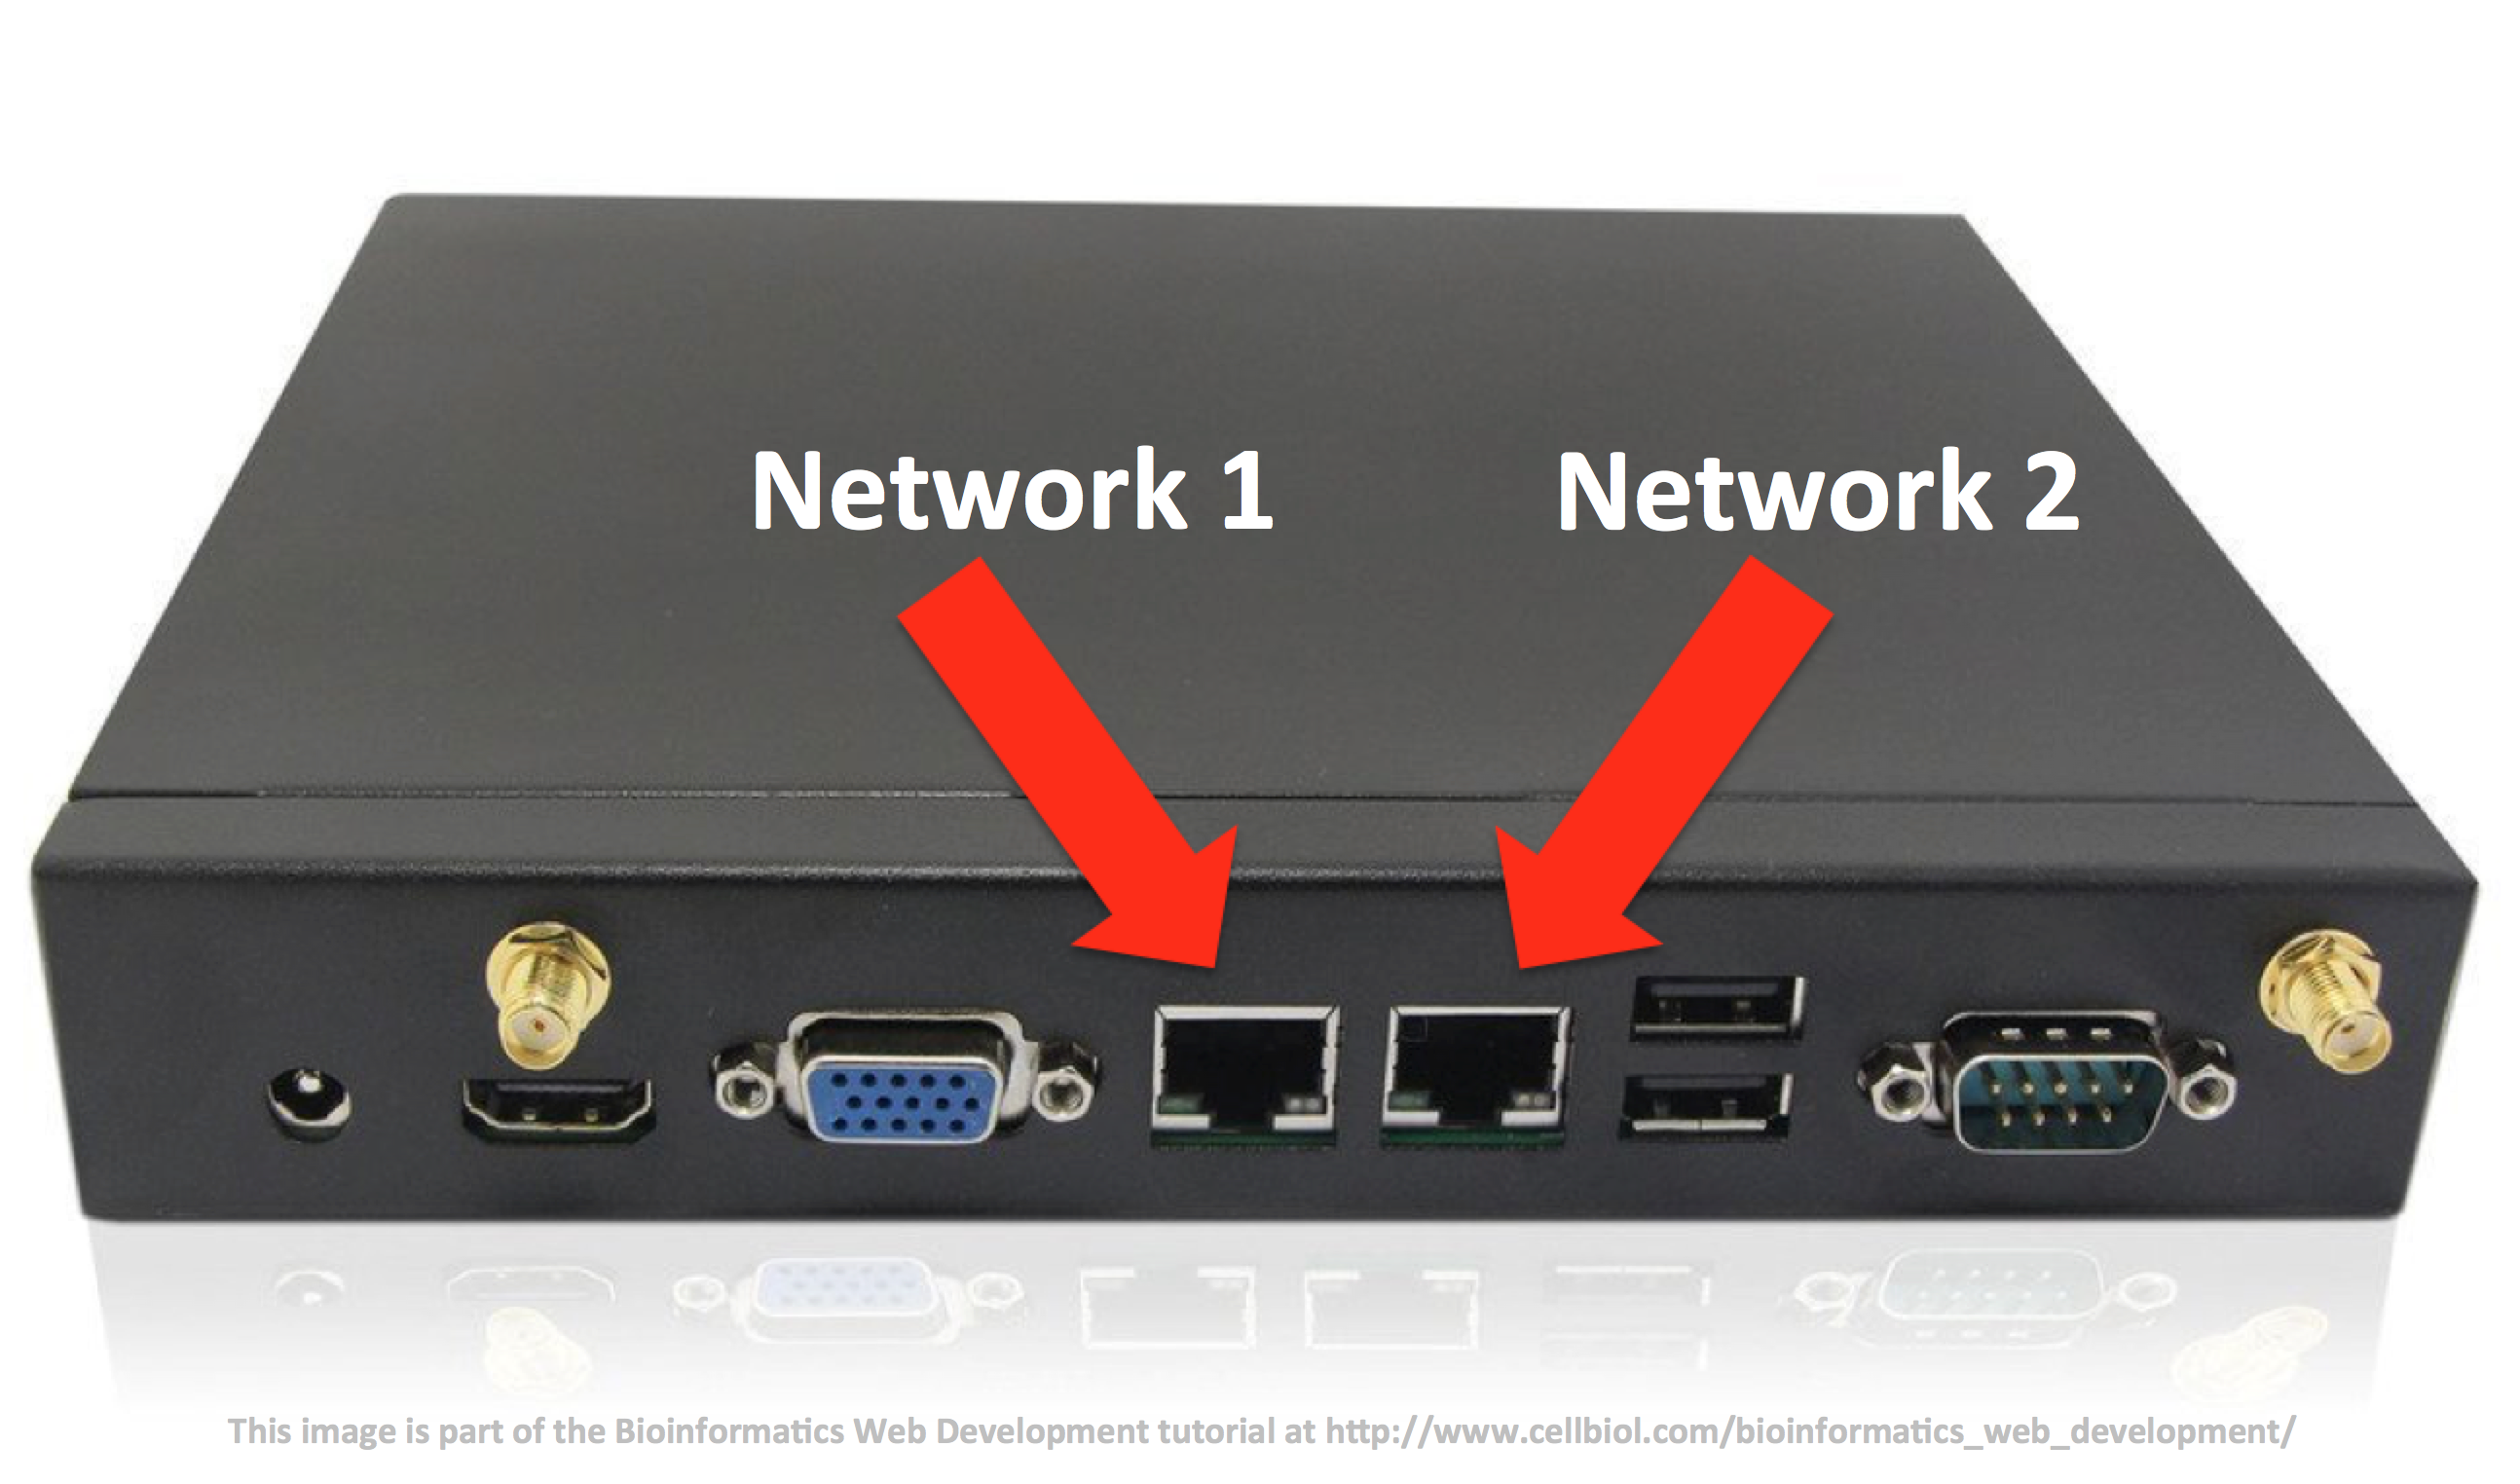 A PC with two ethernet ports could be a perfect starting point to build a router. The installation of a dedicated software such as PfSense can turn a PC with more than one ethernet port in a full fledged router.